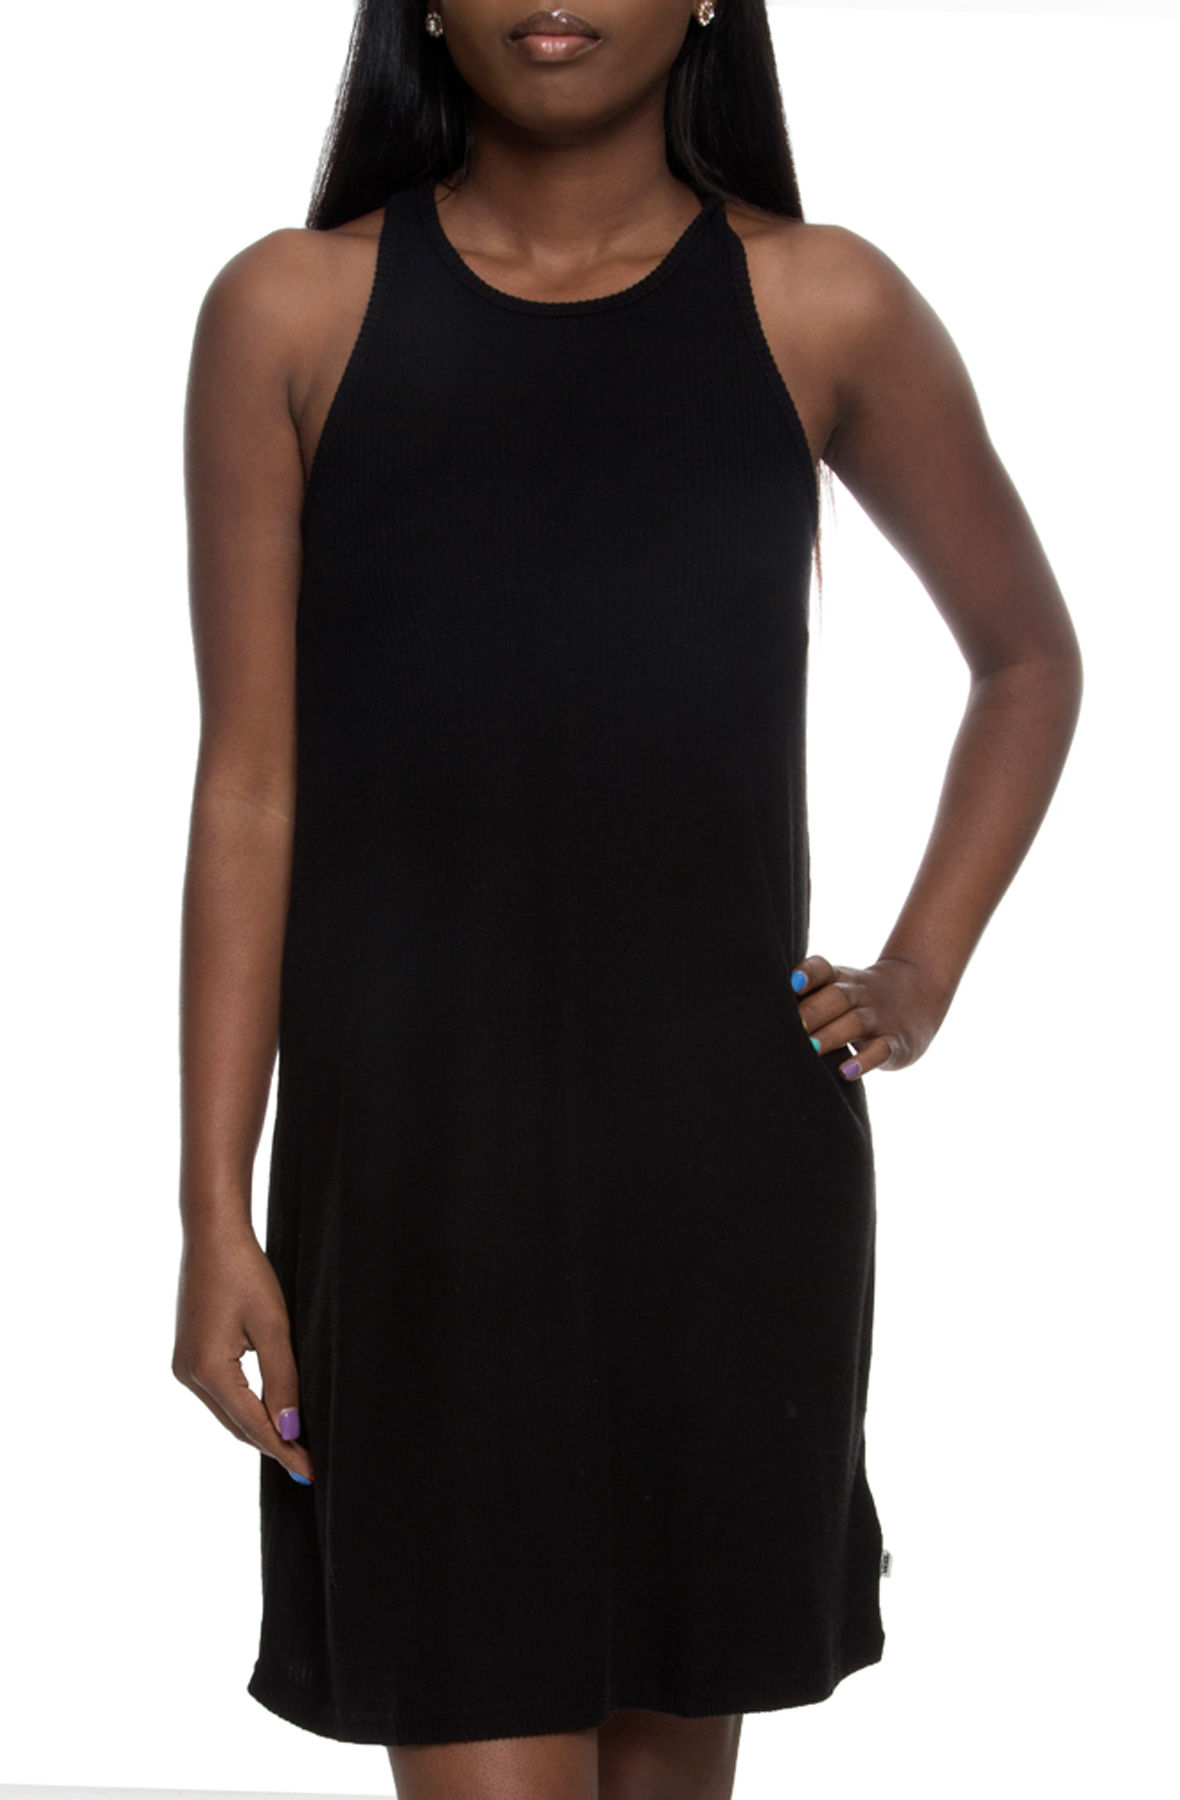 The Alley ll Dress in Black